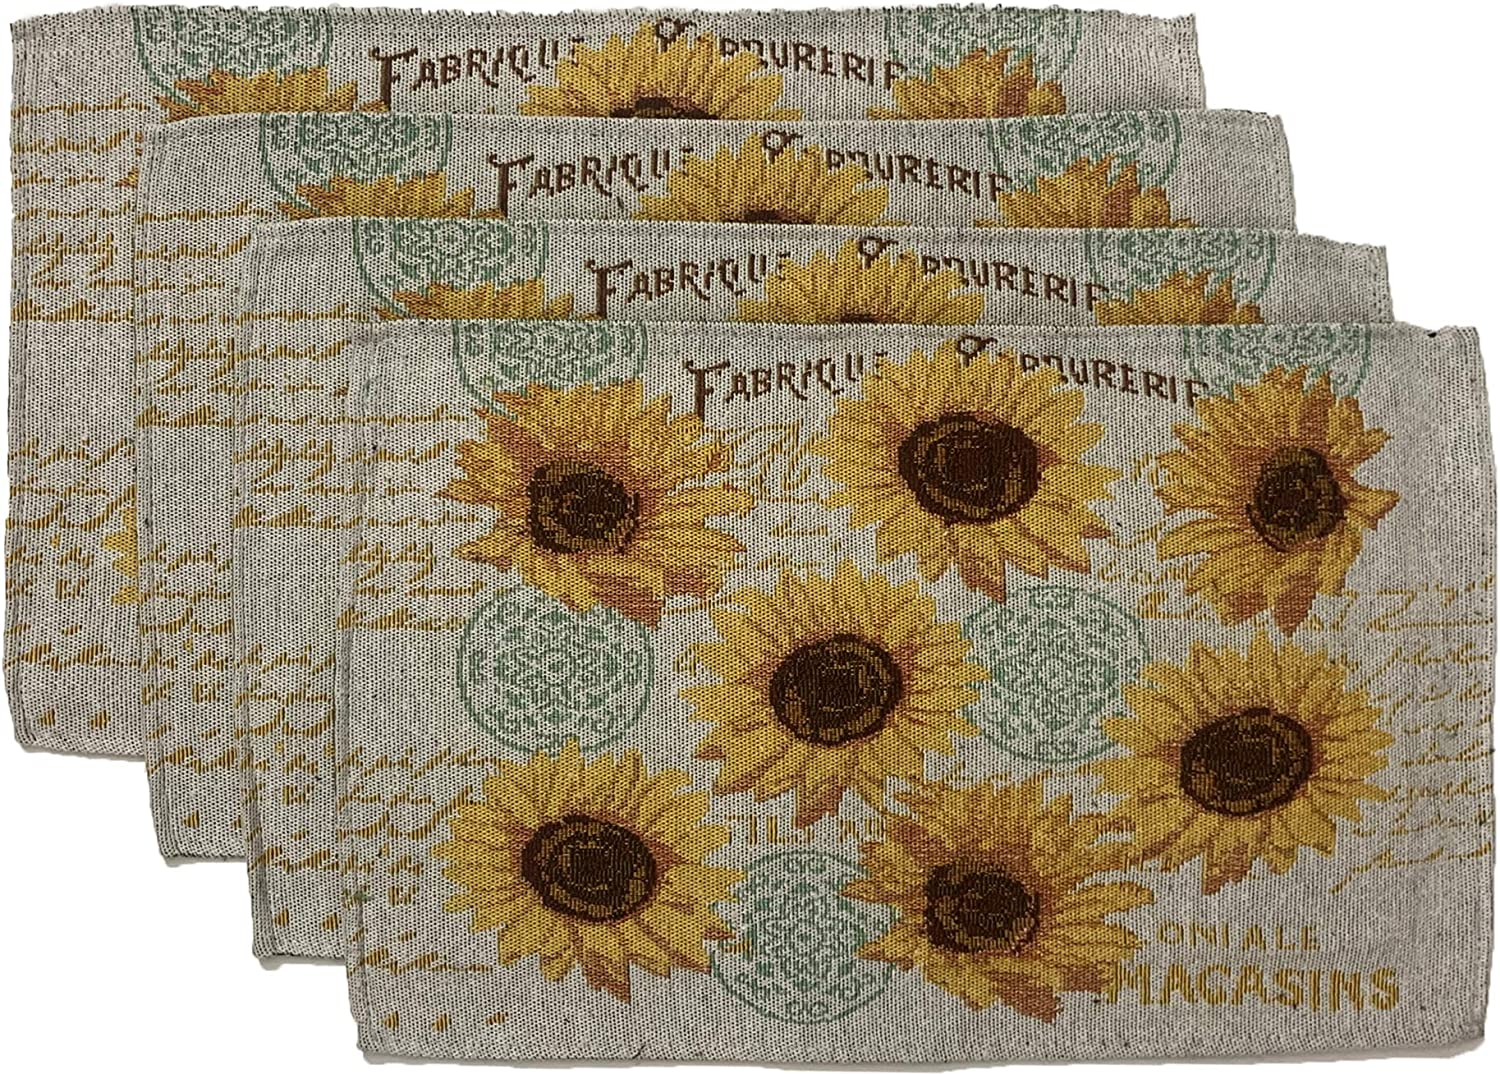 Set of 4, Printed Decorative Floral Design Tapestry Placemats Size: 13